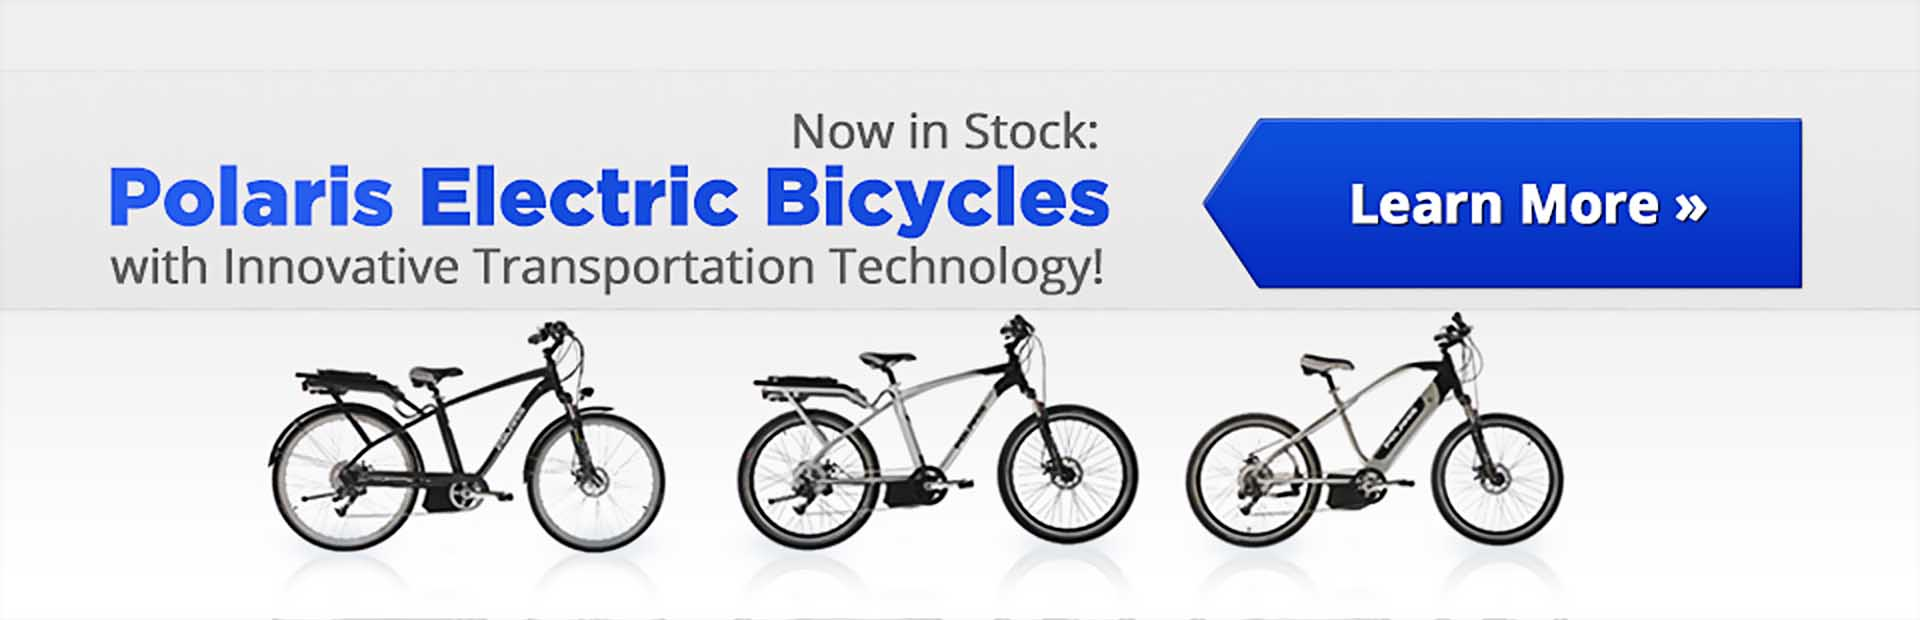 Polaris electric bicycles are now in stock! Click here to view the models.